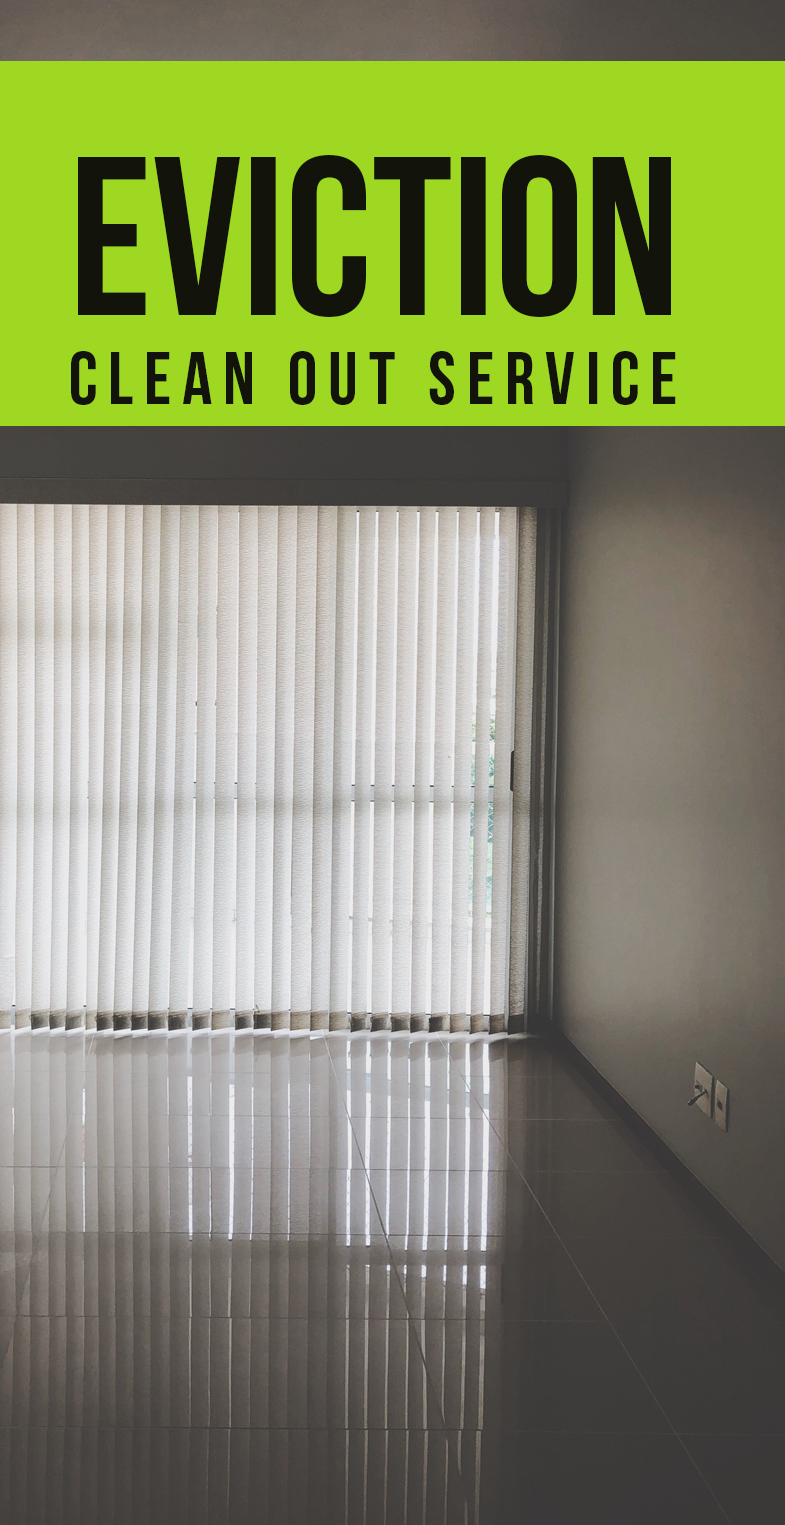 Eviction Clean Out Service Miami